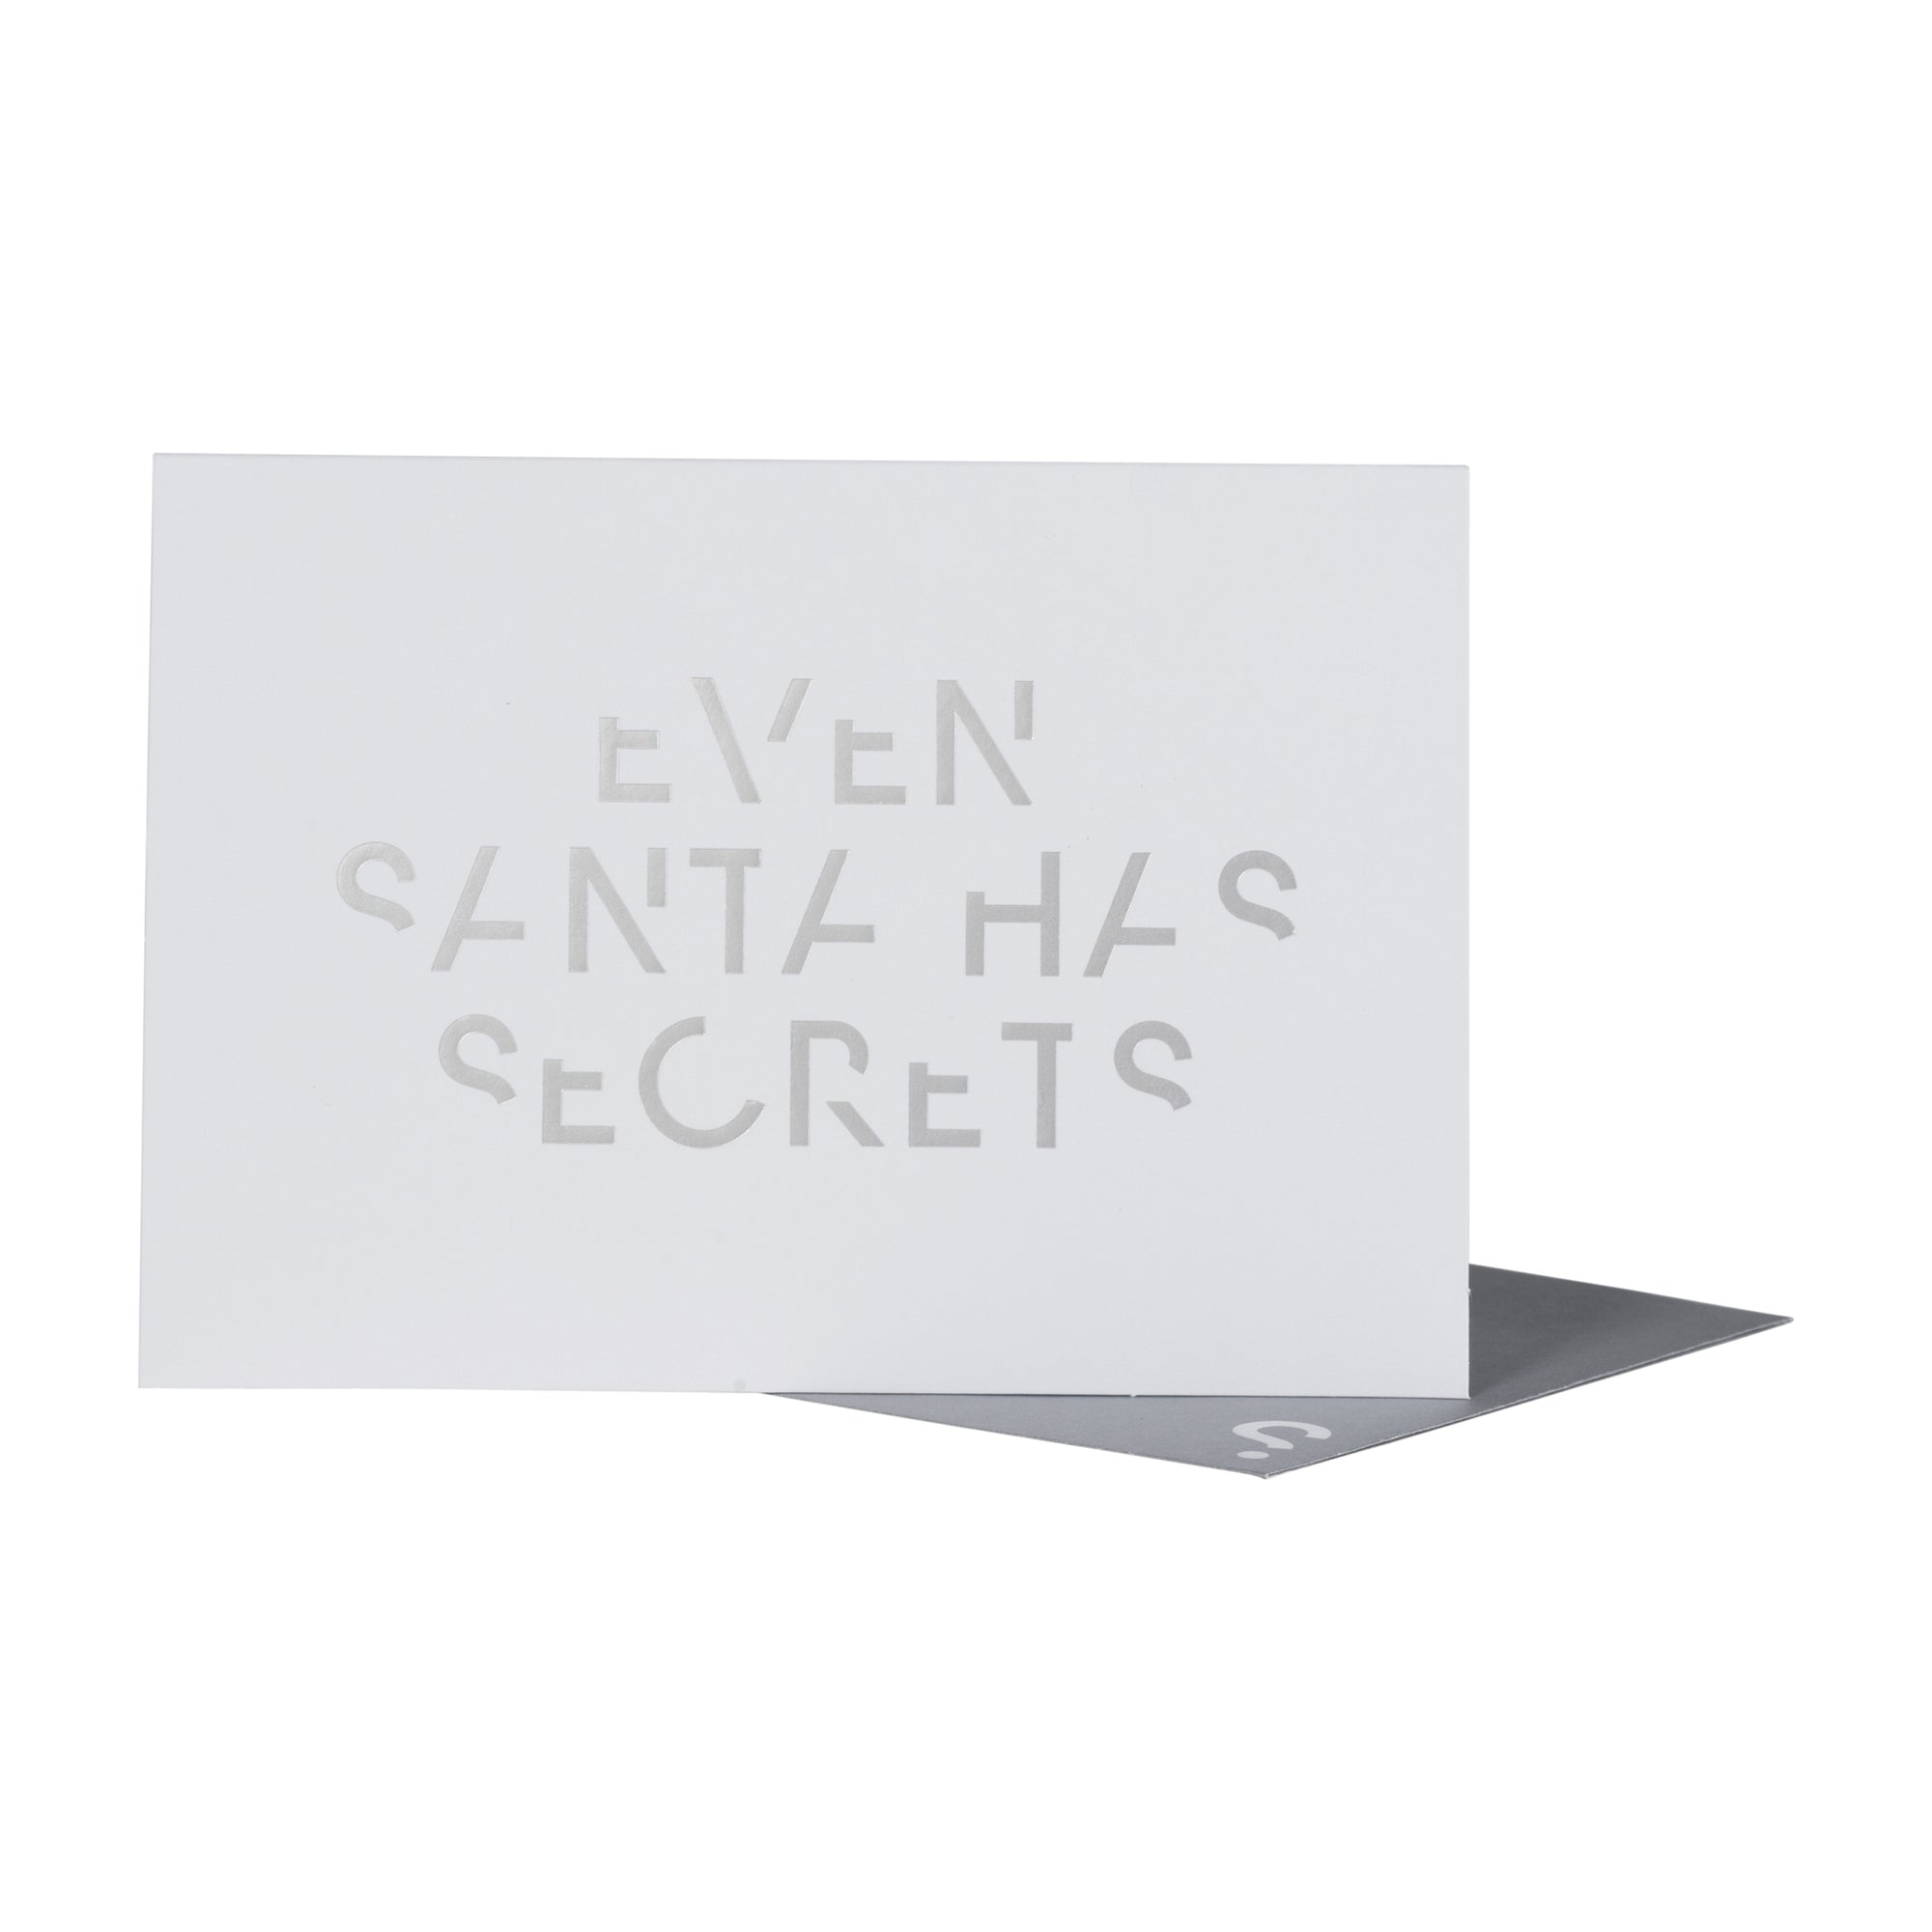 SPYSCAPE Santa Secrets Greeting card -